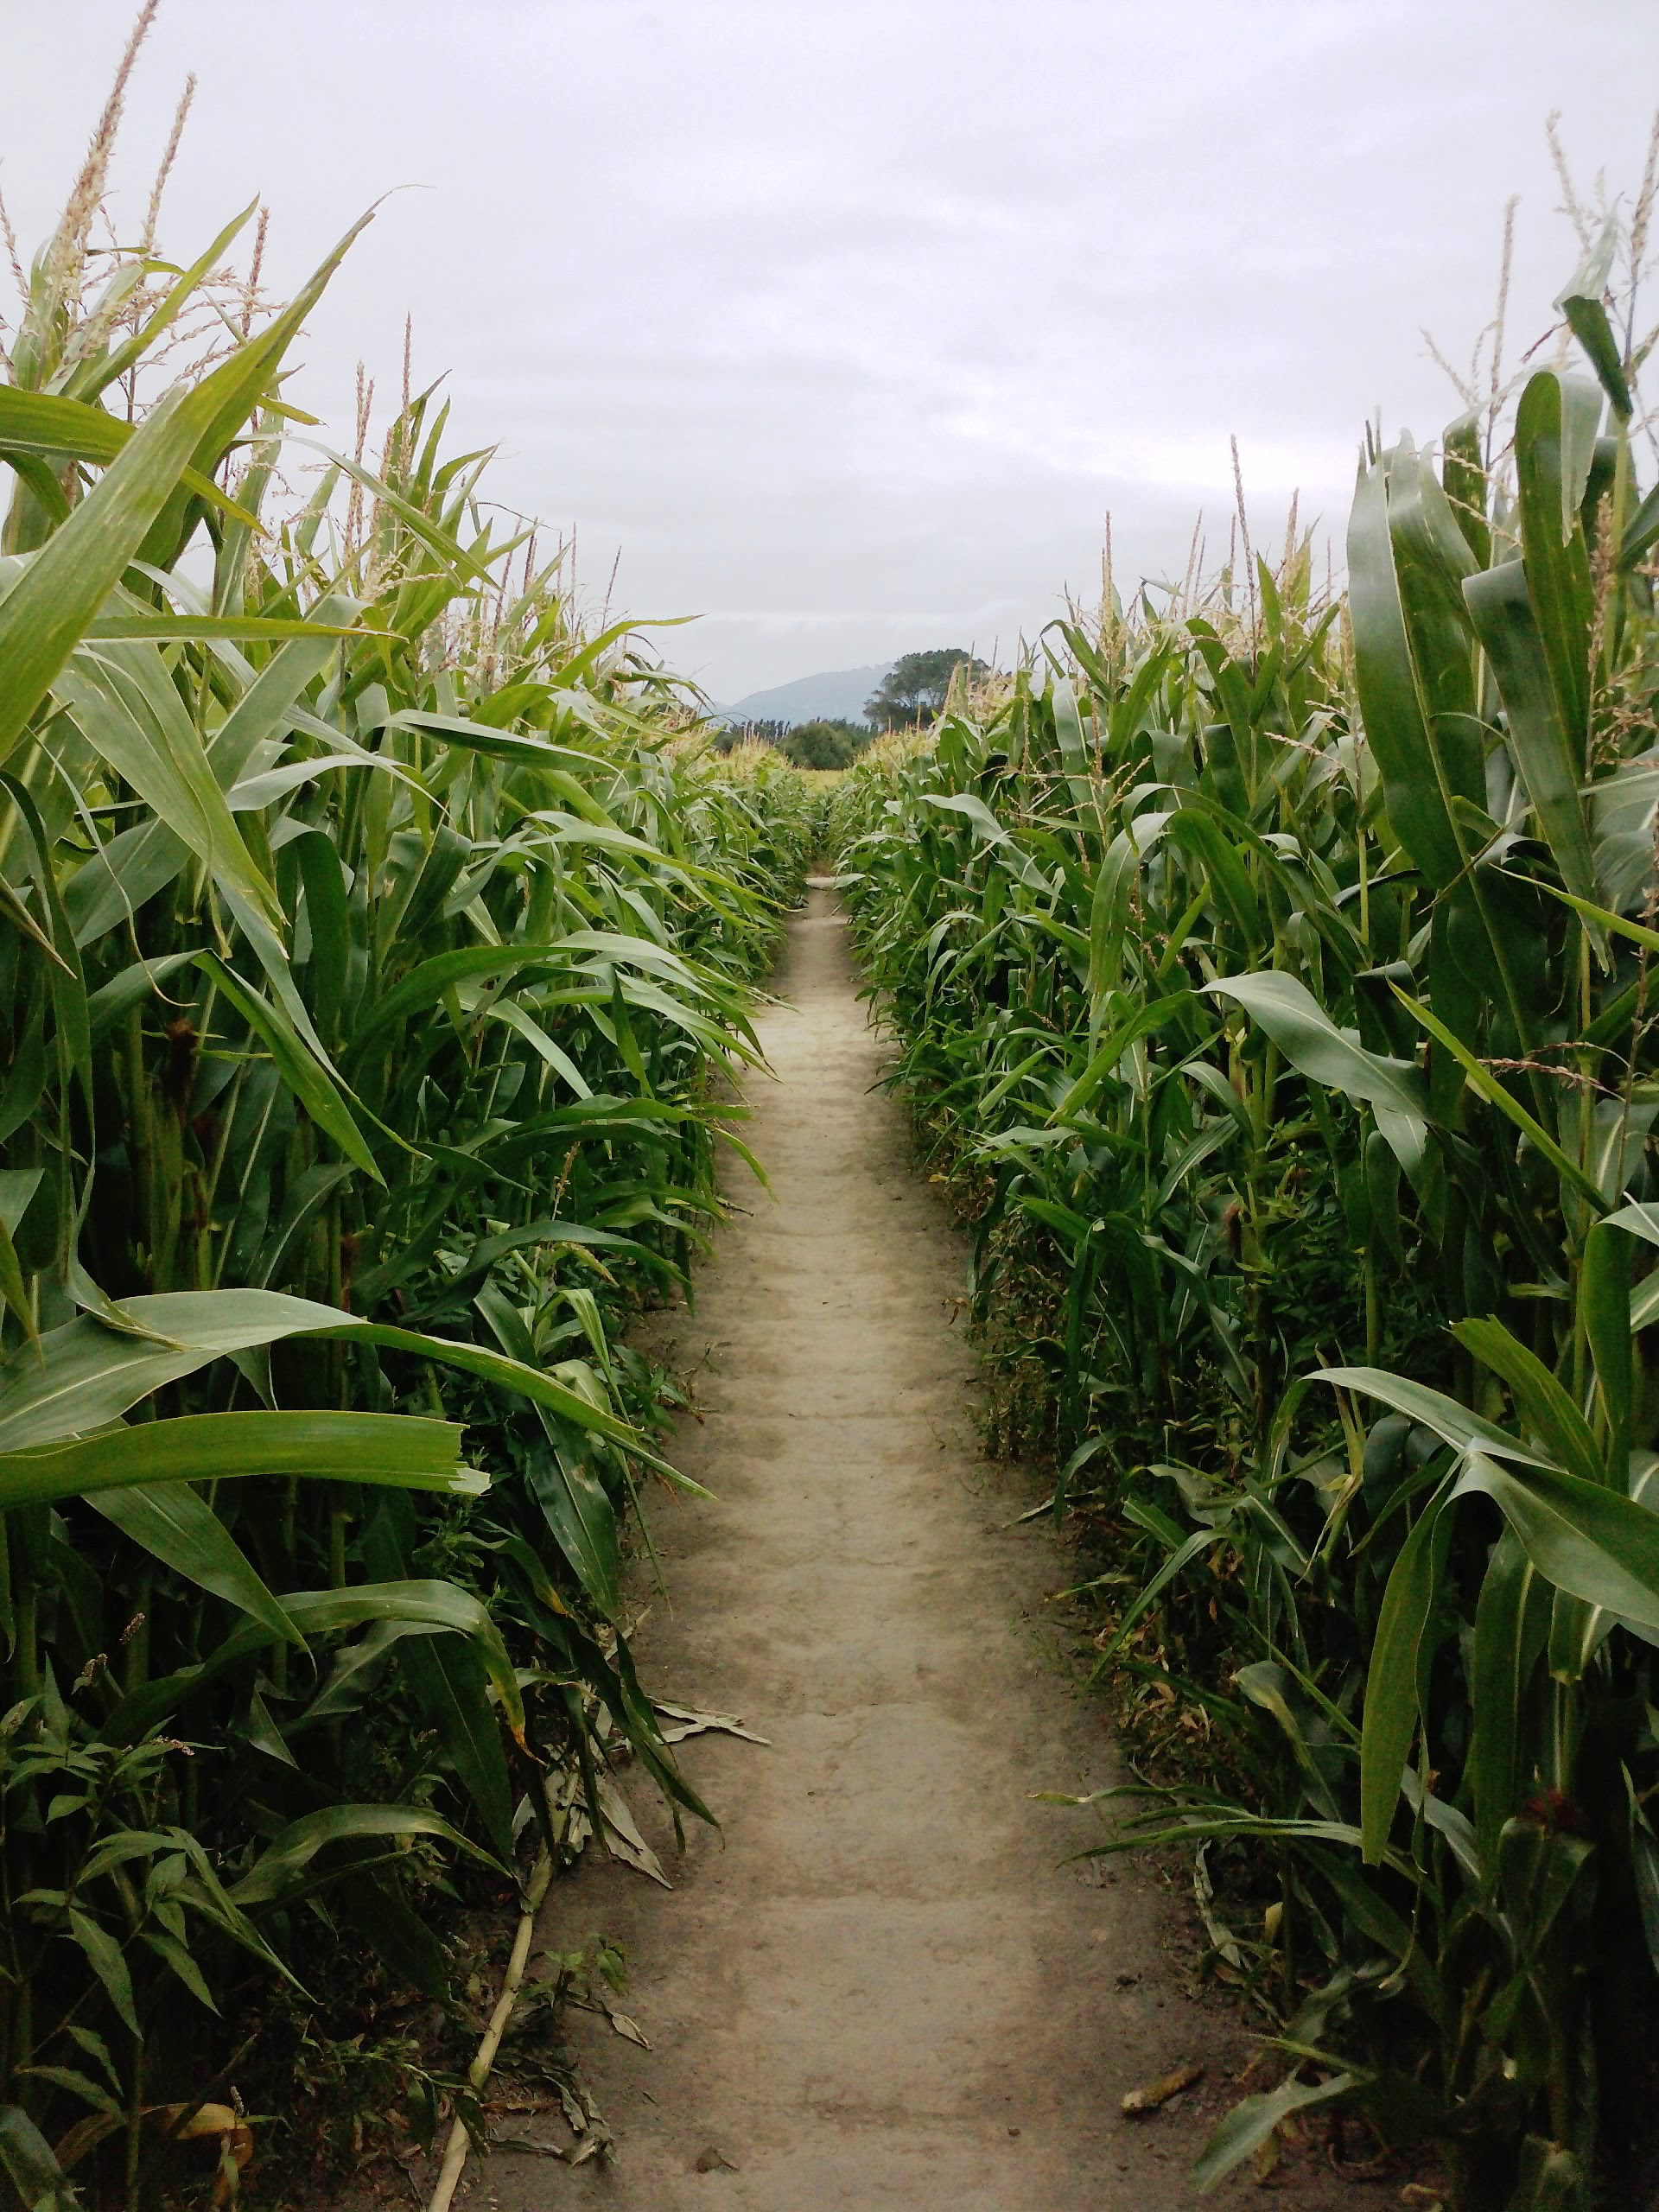 image of a field of corn